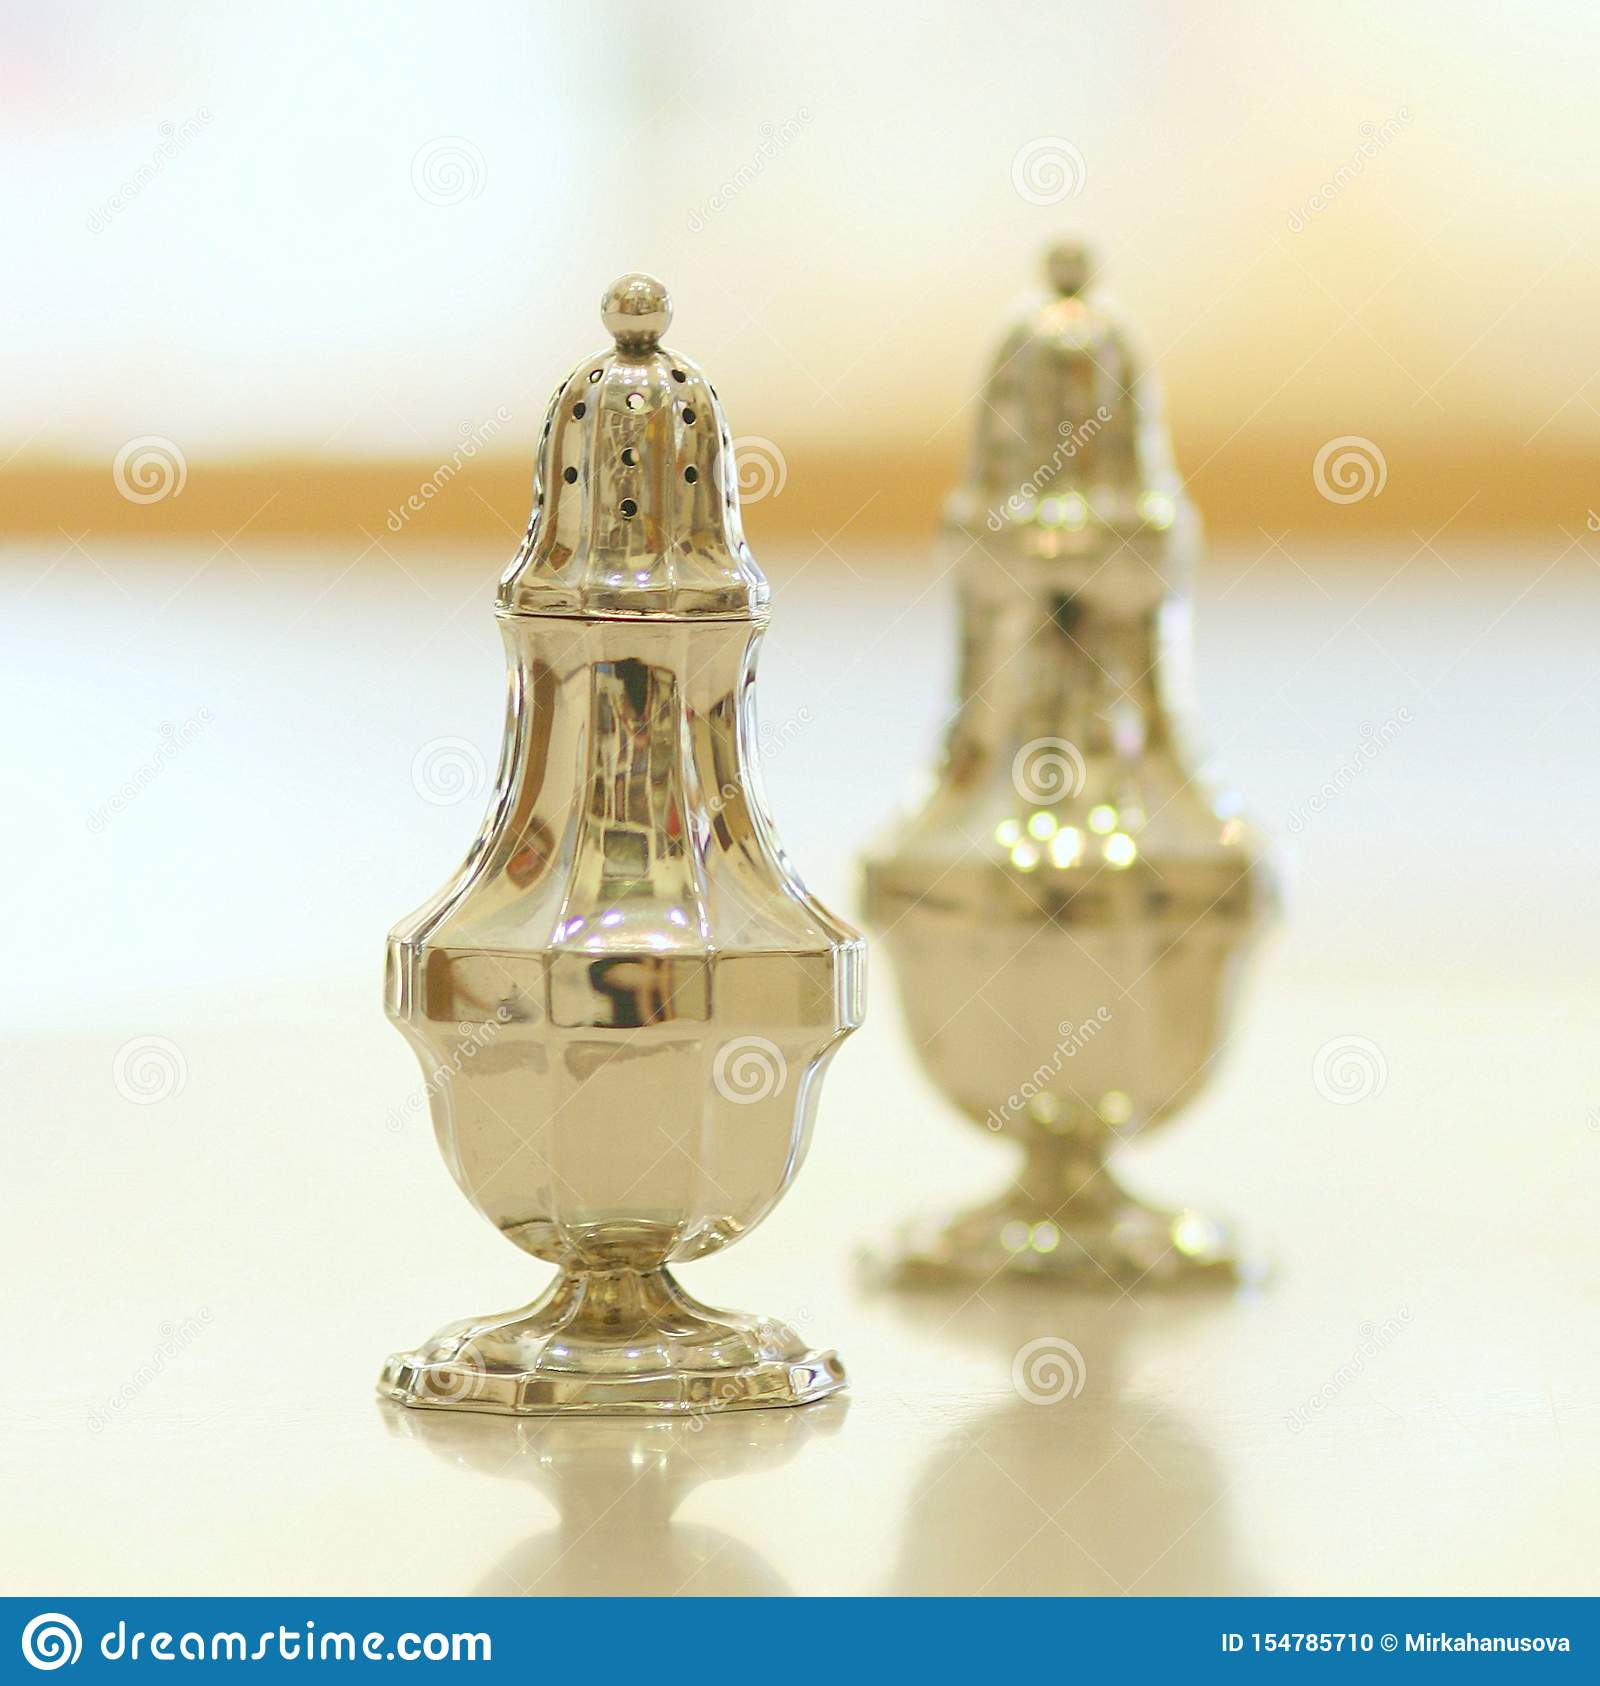 Antique Silver Salt And Pepper Shakers On White Background Stock Photo Image Of Vintage Bucket 154785710